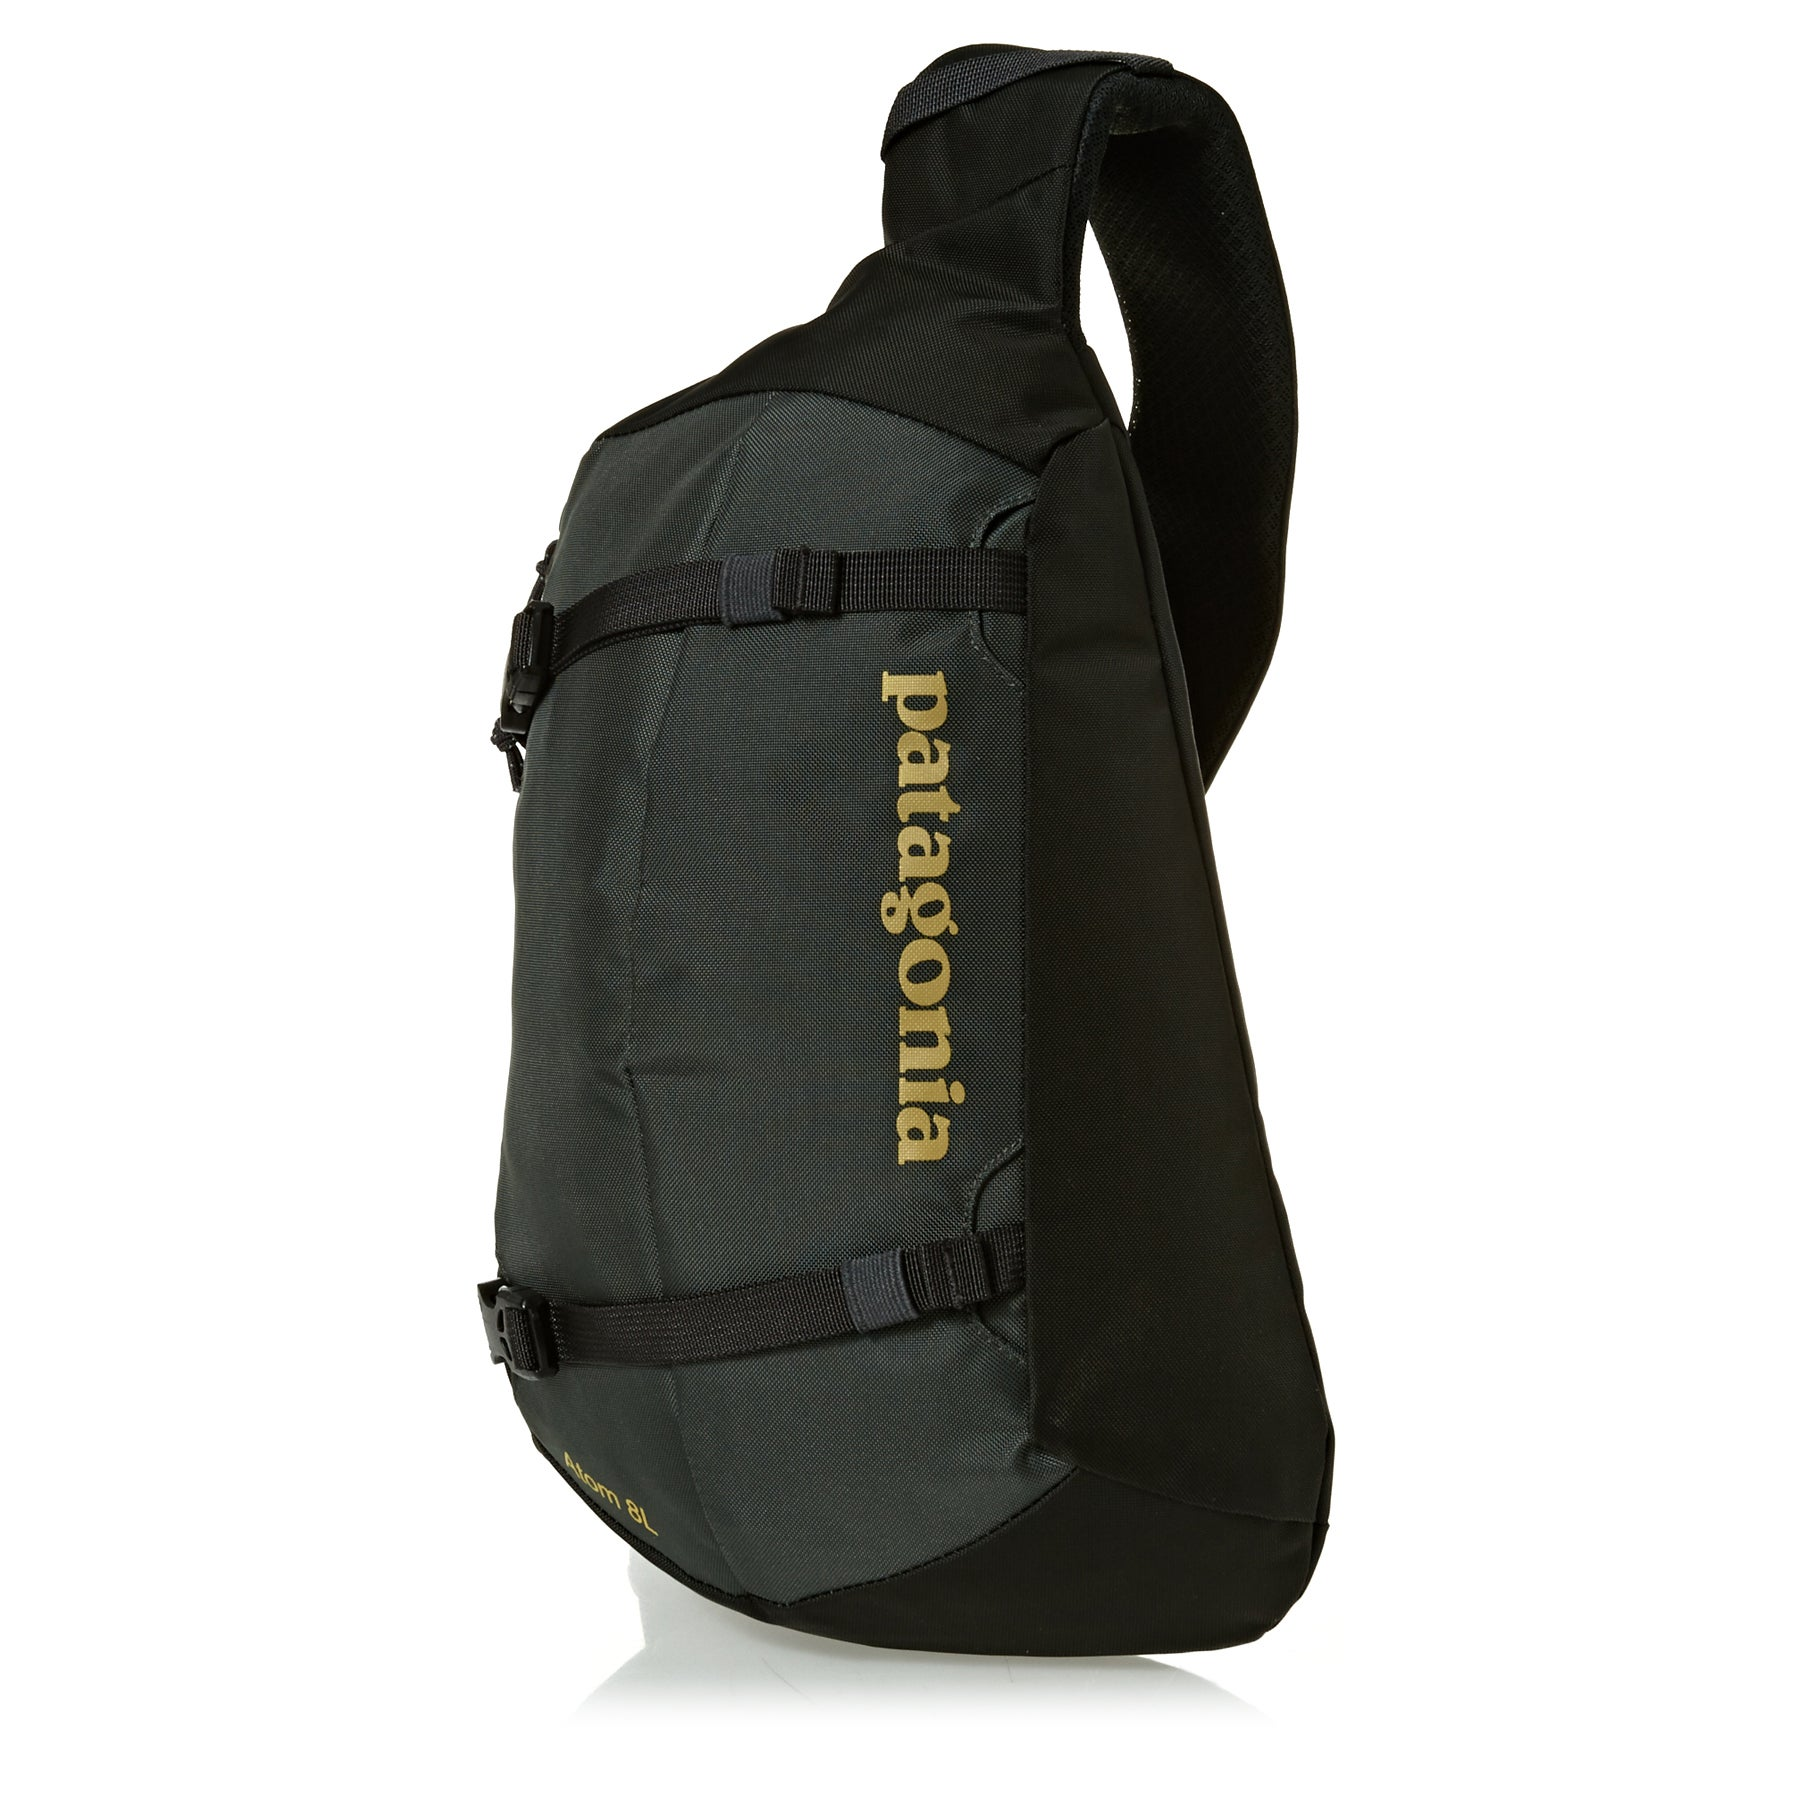 Patagonia Atom 8L Sling Backpack - Forge Grey W/textile Green